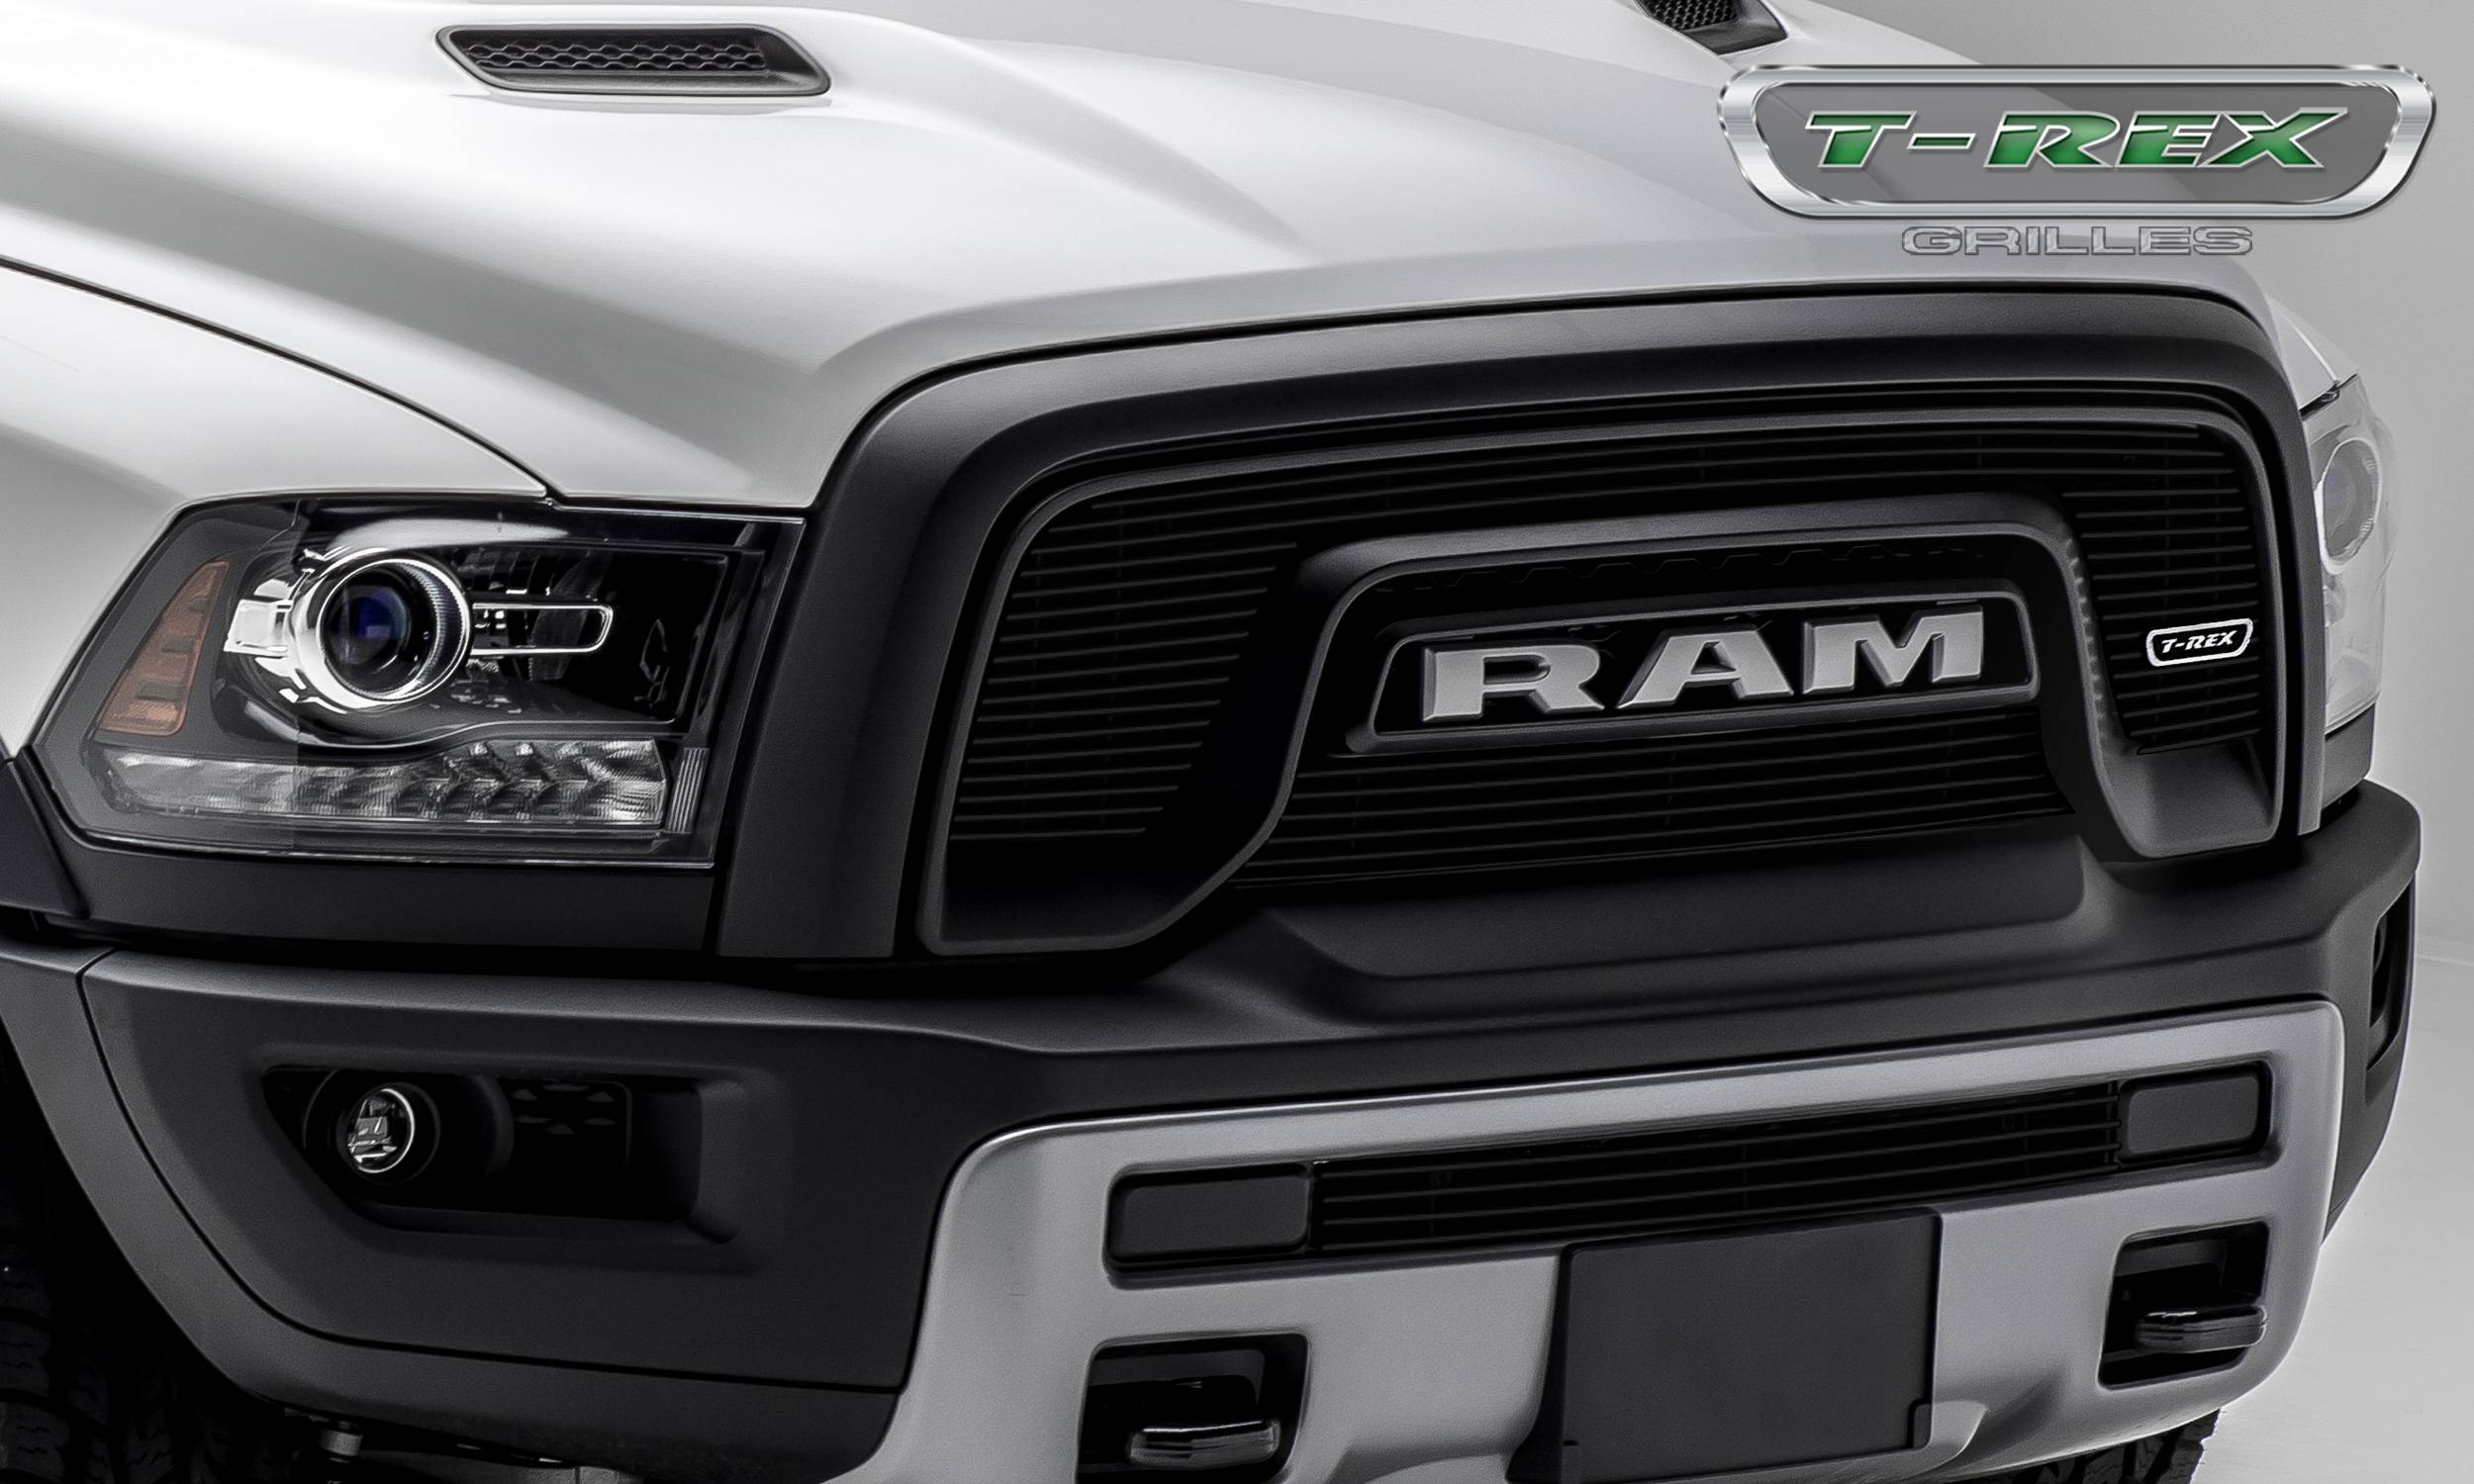 T rex ram rebel billet series 2 pc main grille overlay laser t rex ram rebel billet series 2 pc main grille overlay laser cut aluminum w black powder coated finish part 6214641 voltagebd